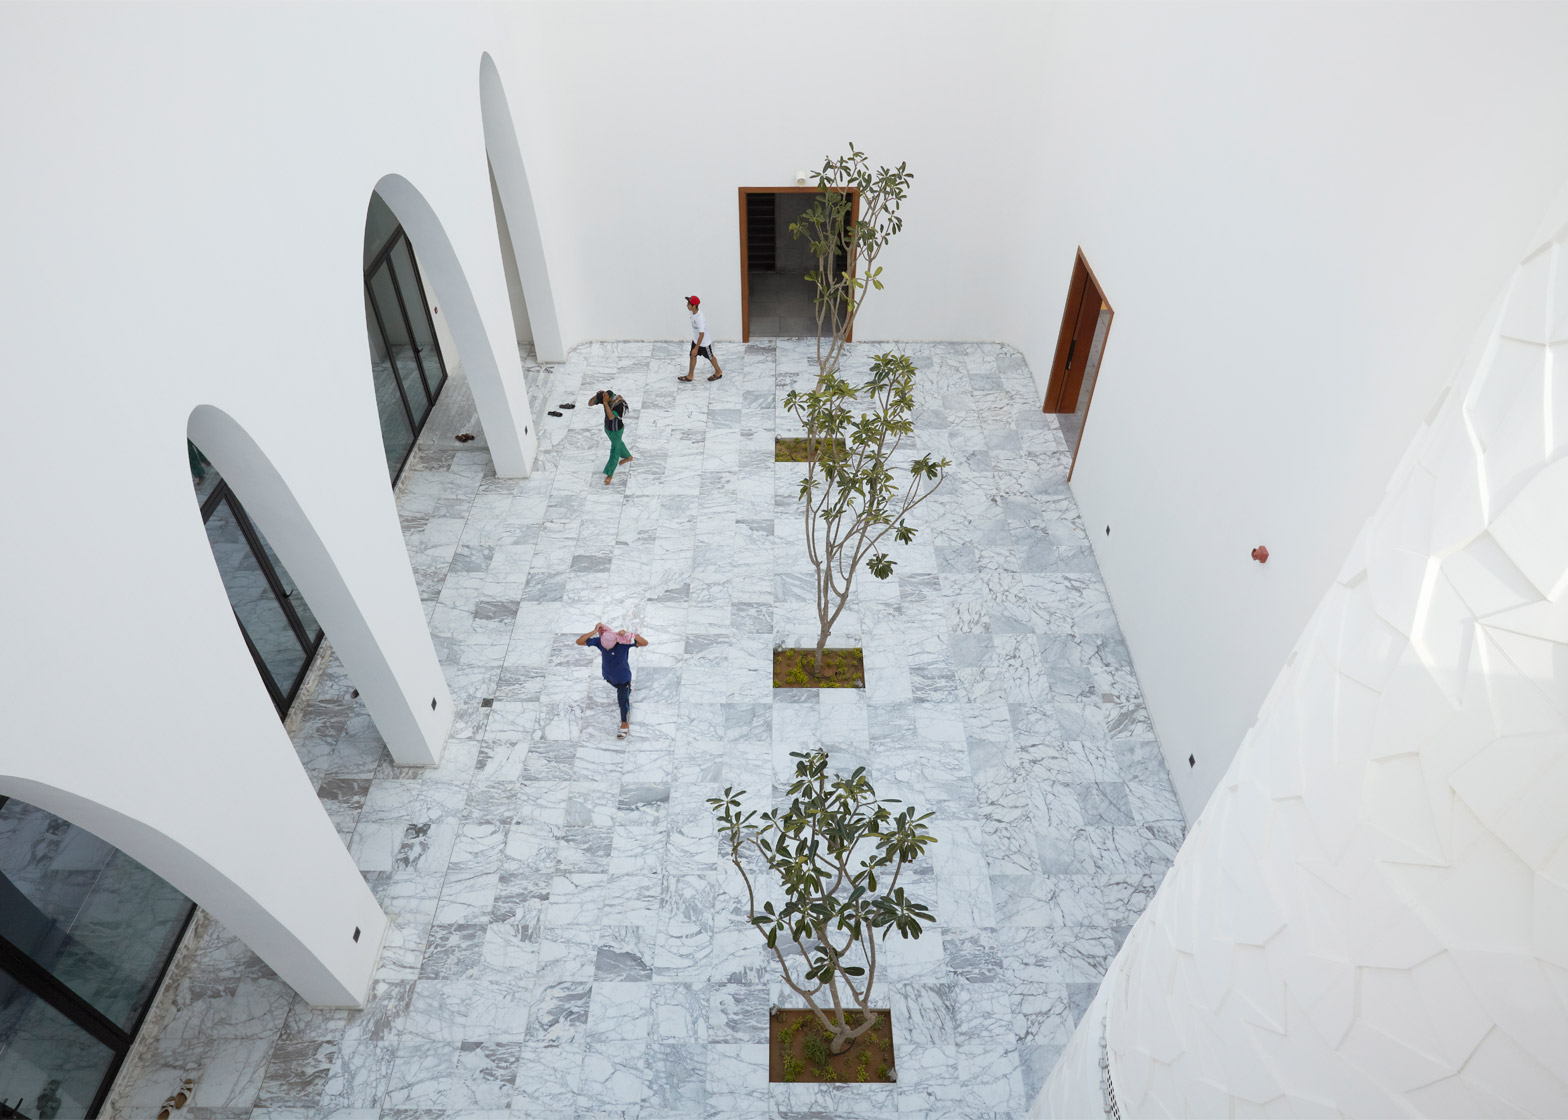 Al Warqa'a Mosque by Ibda Design